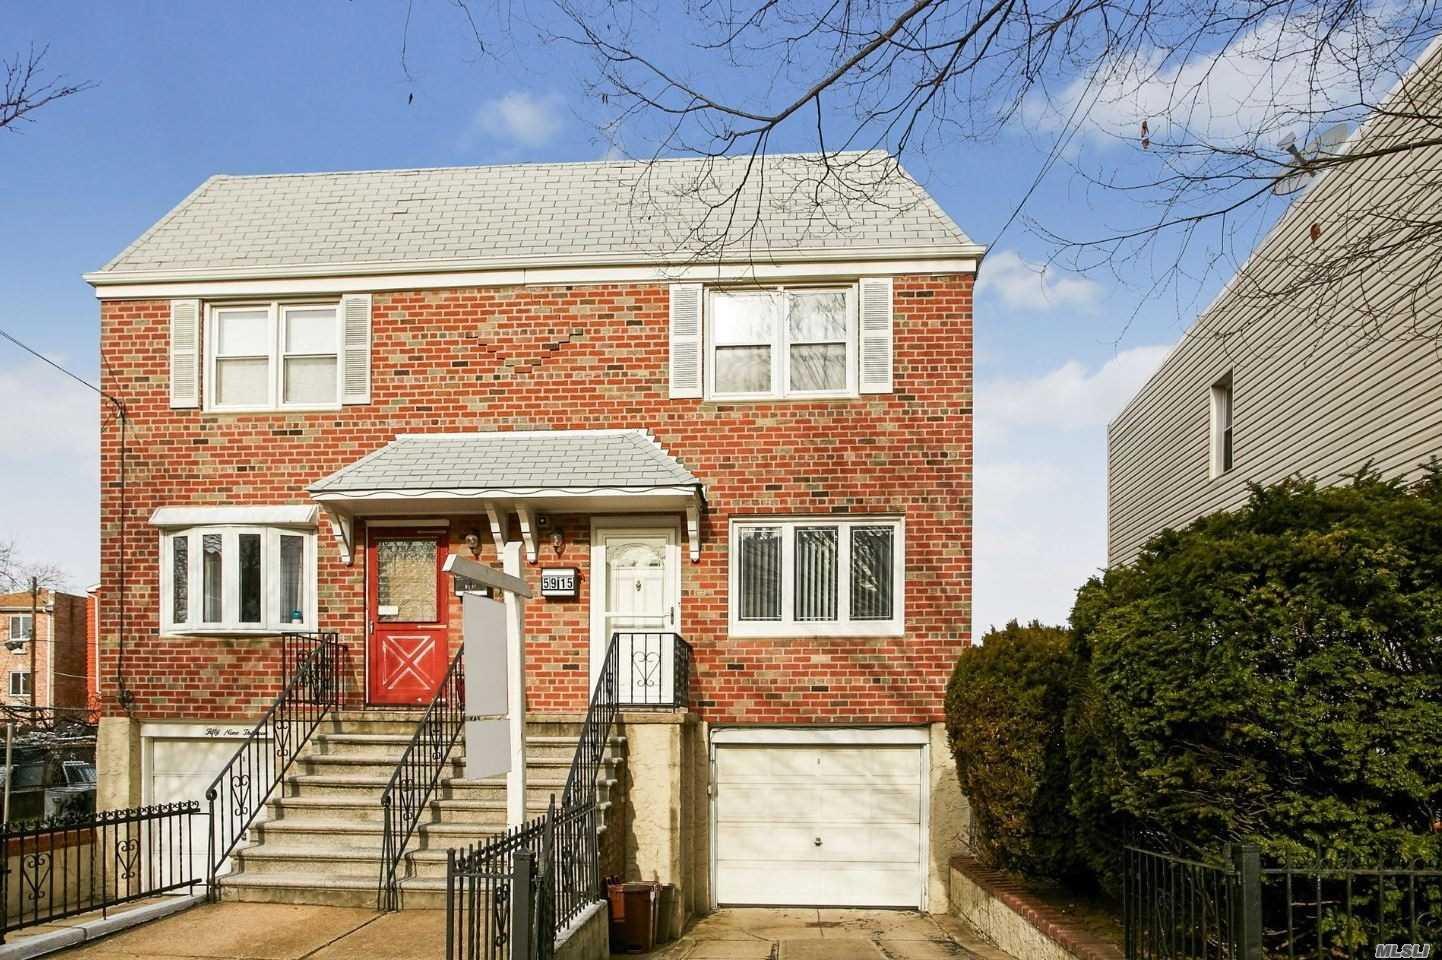 Its A Beautiful Semi Detatched Brick Side Hall With Side Yard And Large Private Yard, Parking For 2 Cars, Hardwood Floors Throughout, 2 Updated Bathrooms In Last 3 Years , Finished Basement , There Is Also A Private Driveway And Garage, 3 Bedrooms, Short Distance To L Train